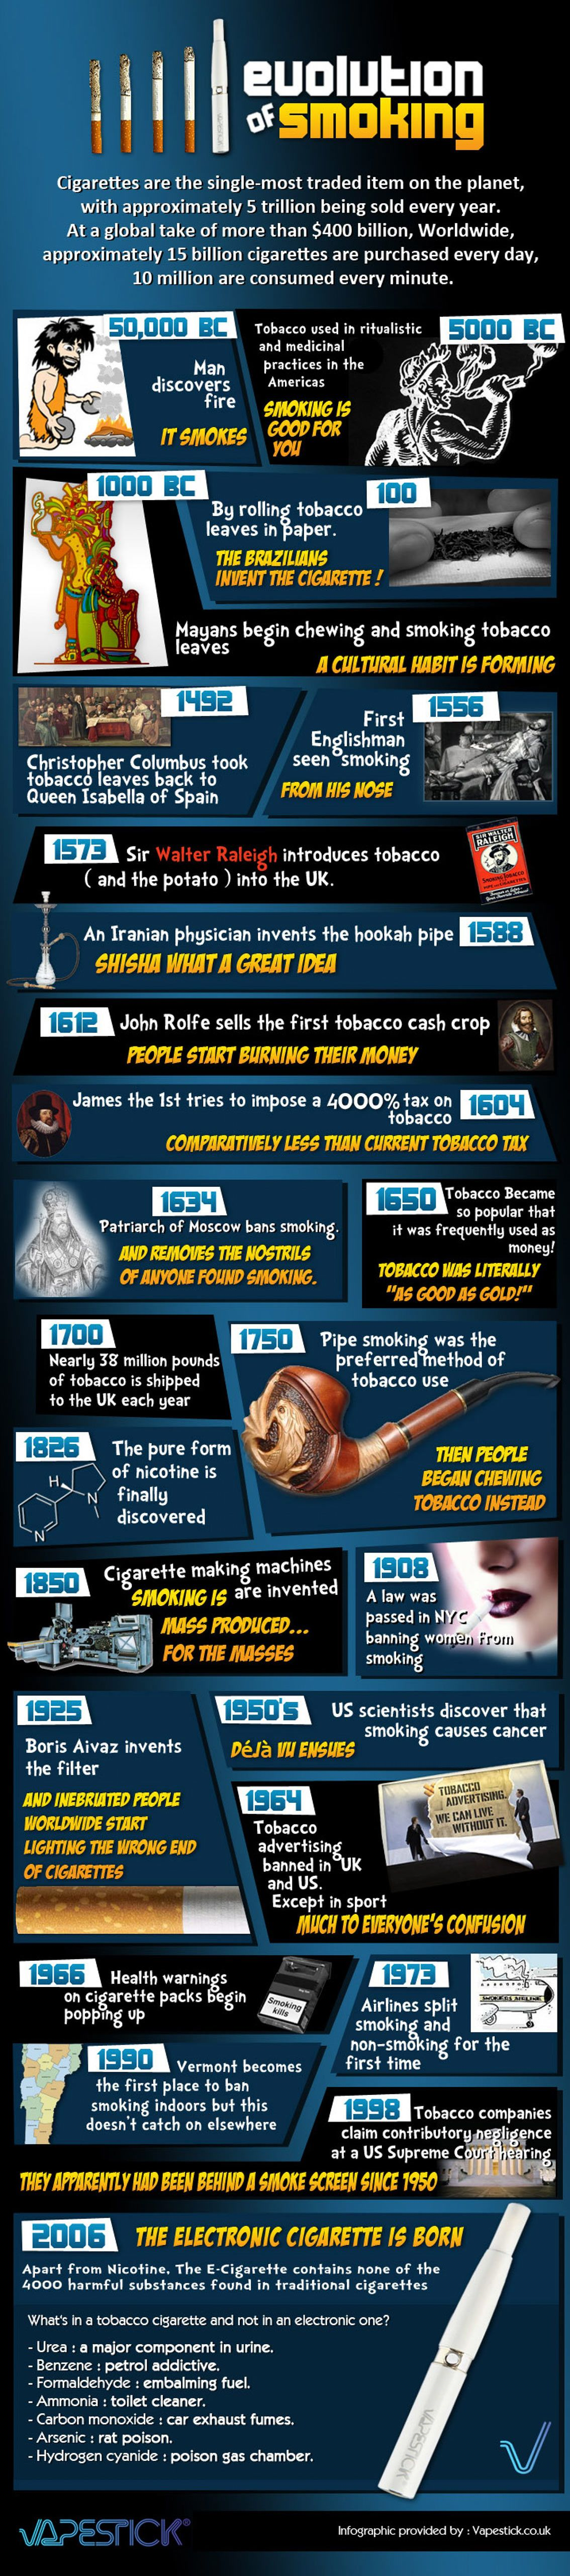 Evolution of Smoking from Cigarettes to the Electronic Cigarette Infographic. Topic: cigar, smoker, e-cigarette, handheld electronic device,  vaporizer.